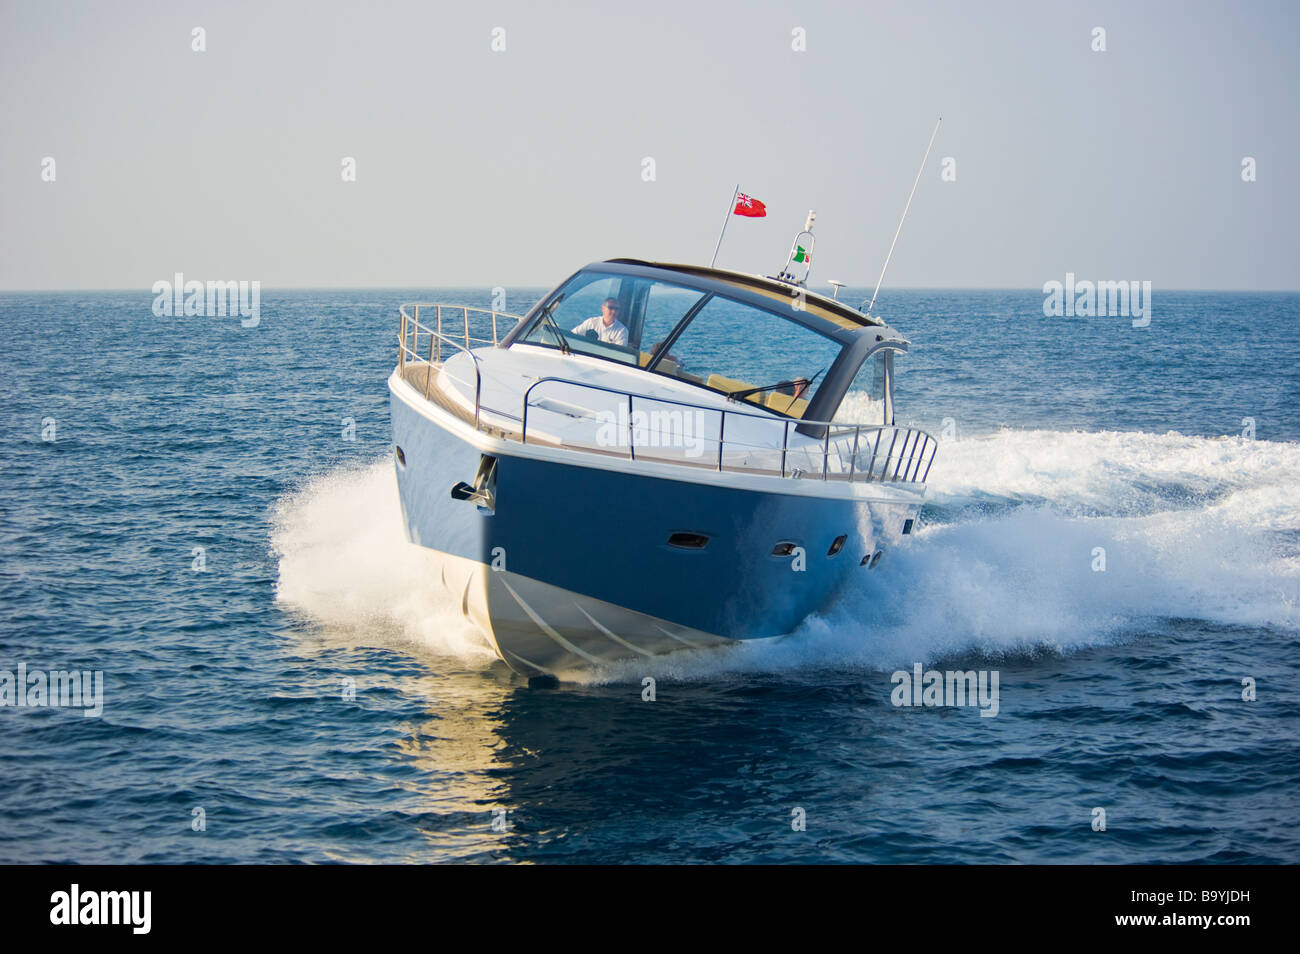 Sealine SC 47 powerboat cruising in the Mediterranean sea | Sealine SC 47 Sportboot kreuzt im Mittelmeer - Stock Image